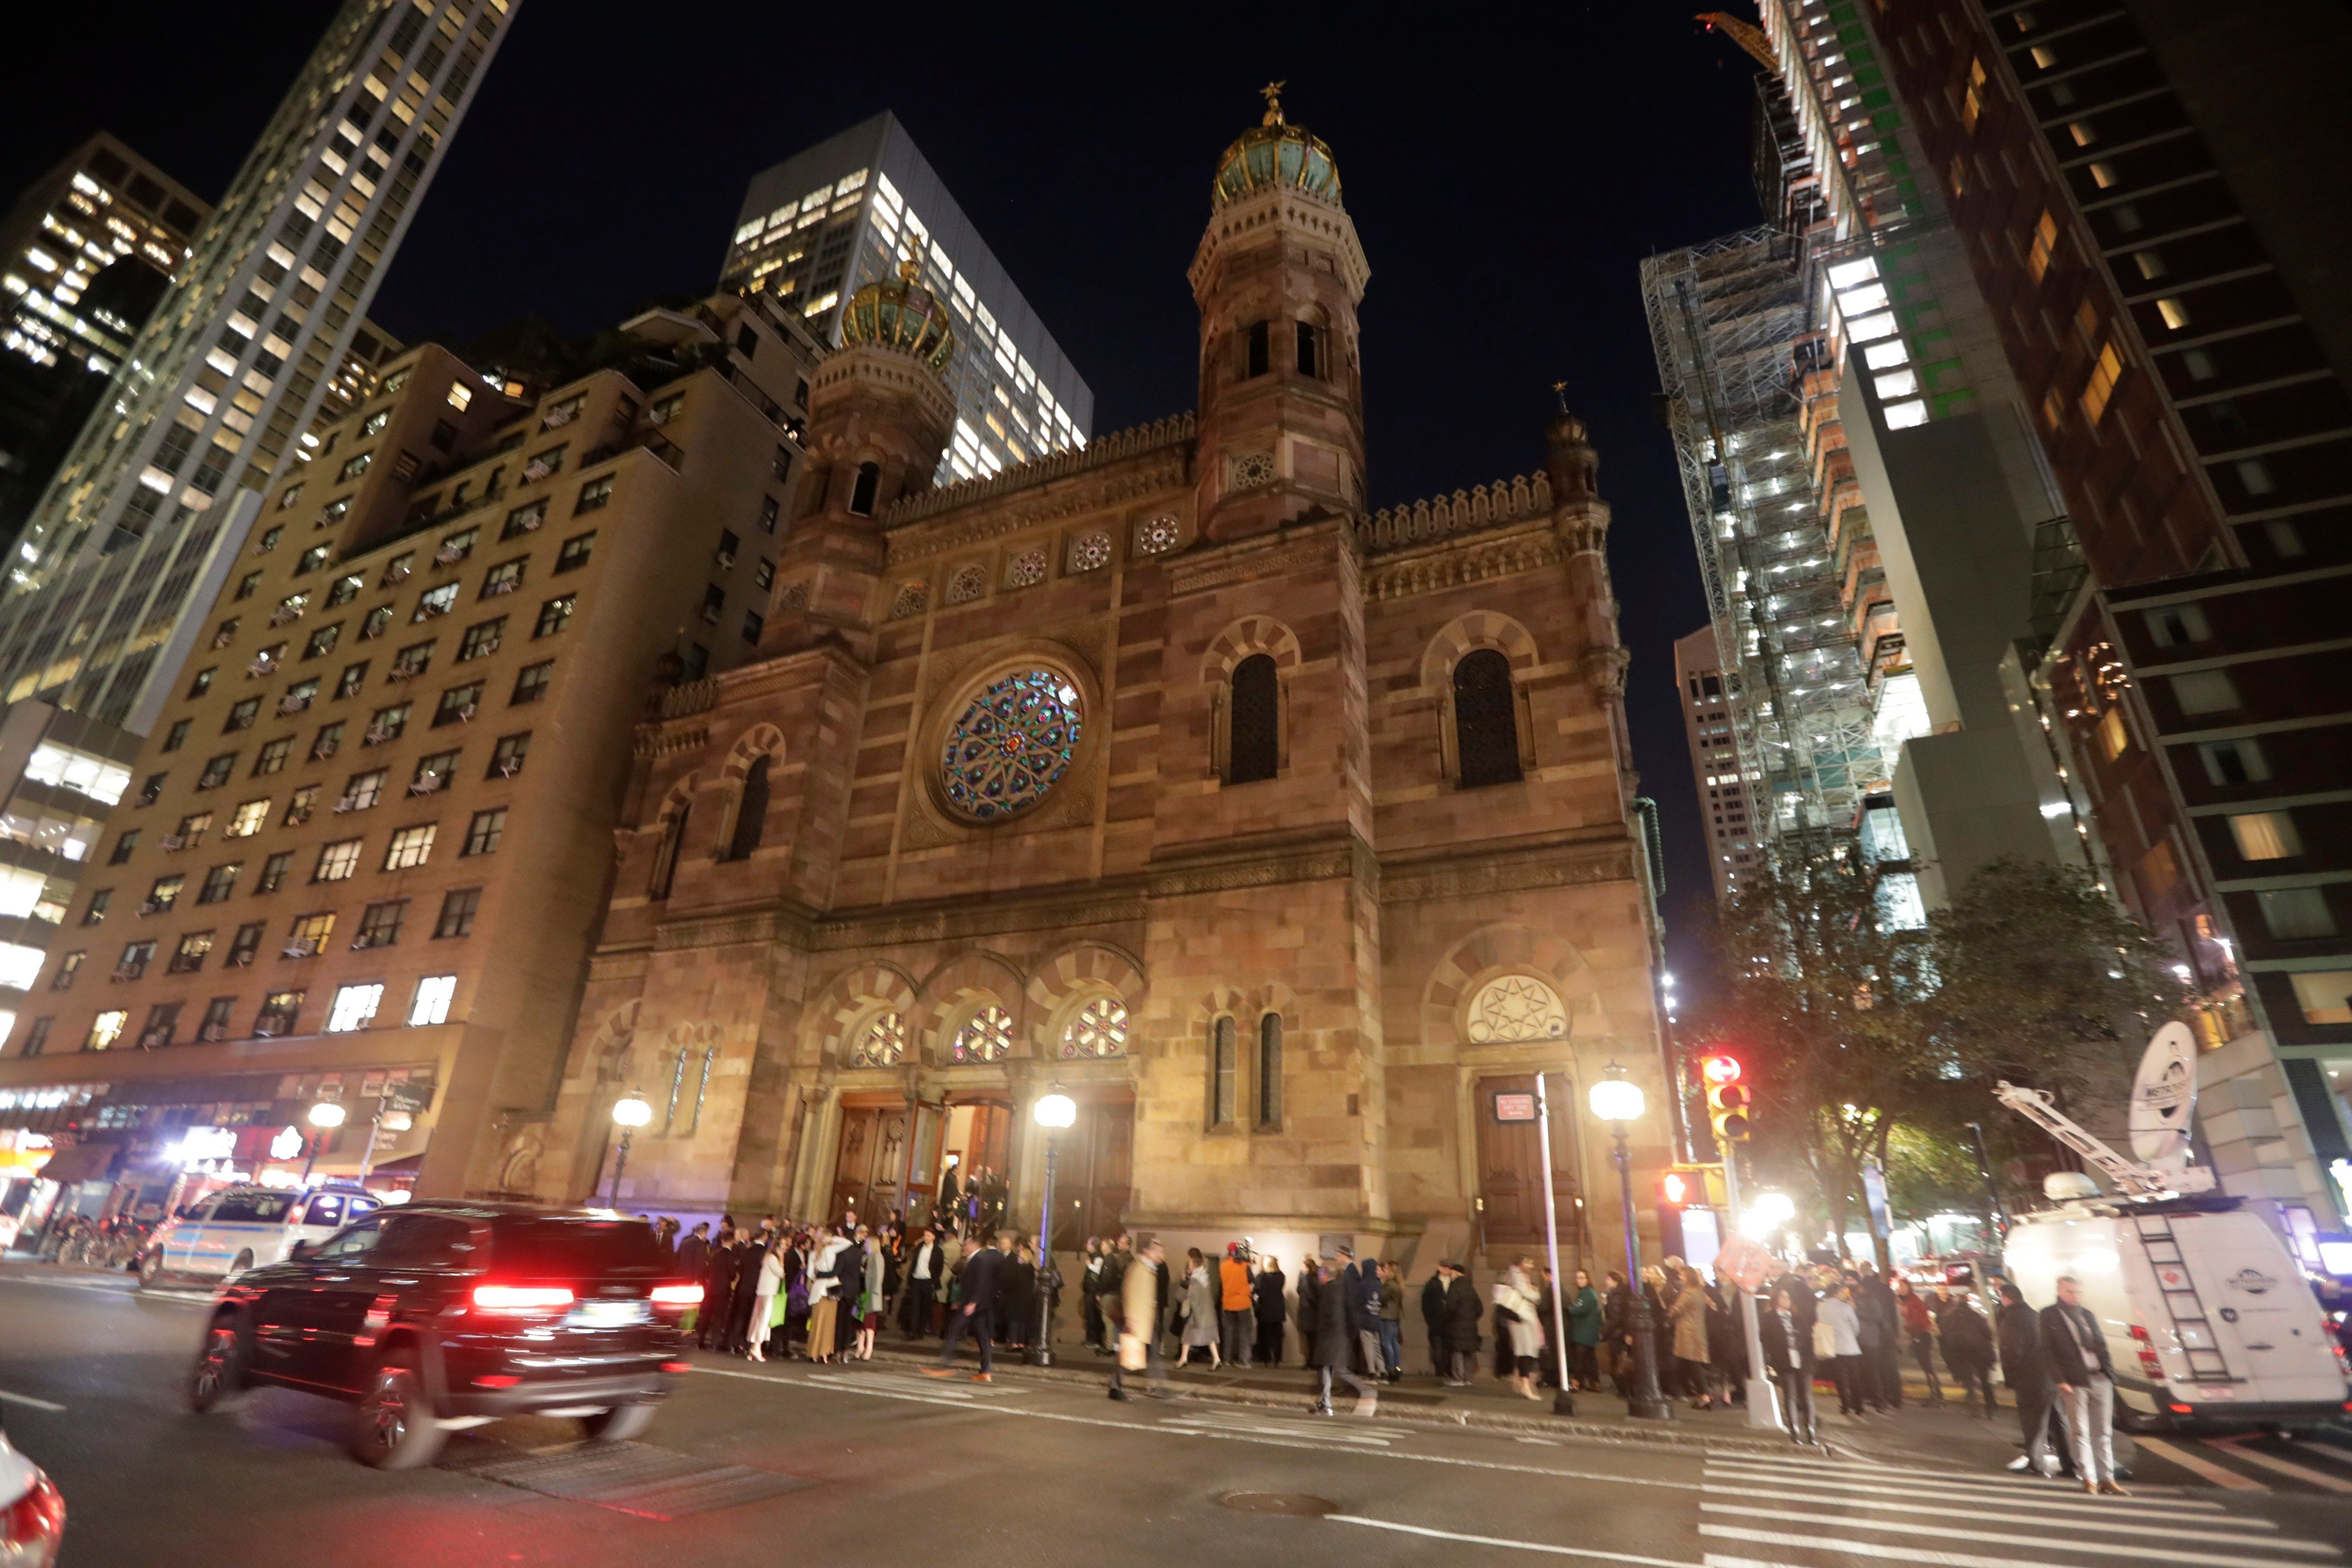 Central Synagogue is a historic Reform Jewish congregation located in midtown Manhattan.